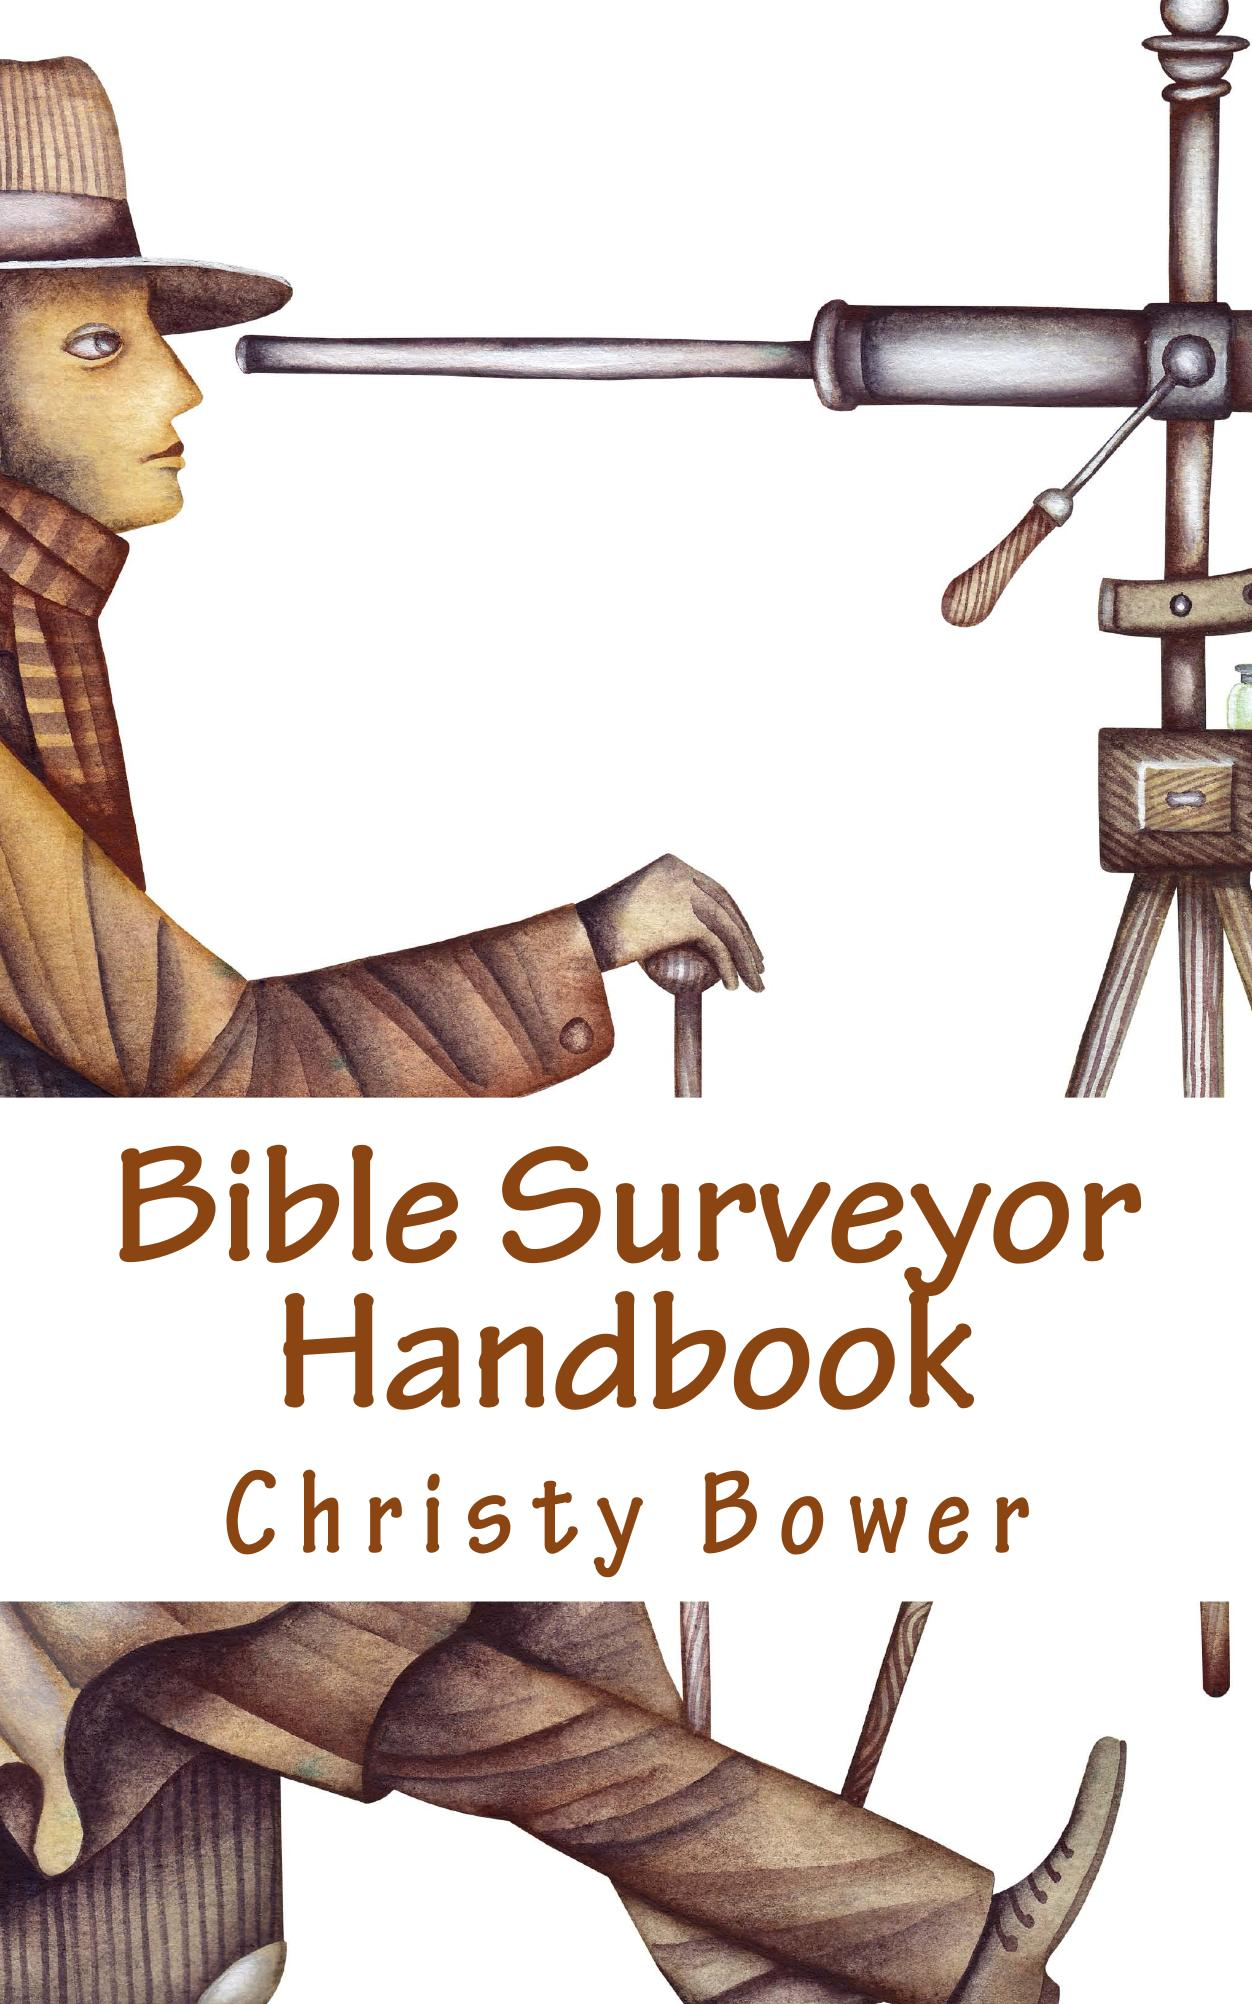 Bible Surveyor Handbook